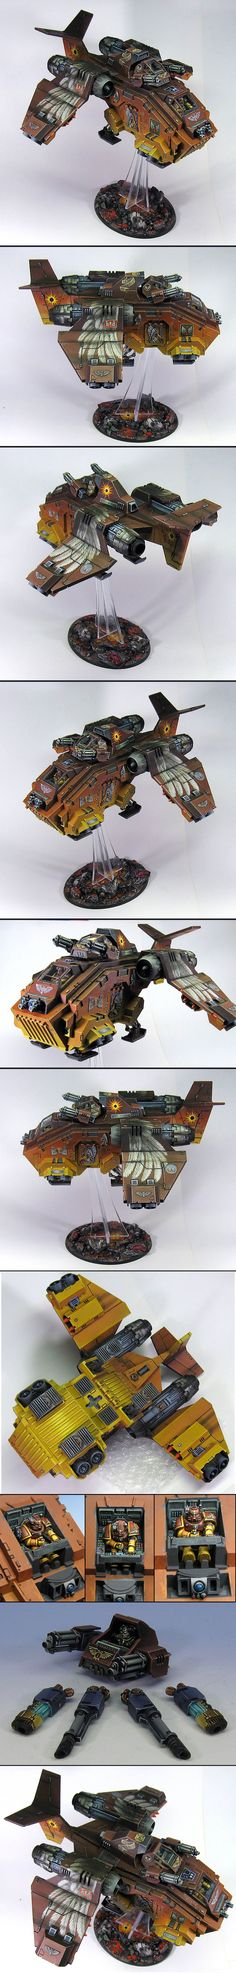 Angels Solaris Storm Raven gunship: wargear: nose/dorsal-turret twin-linked heavy-bolters/assault-cannons; 2x2 underwing bloodstrike-missiles.